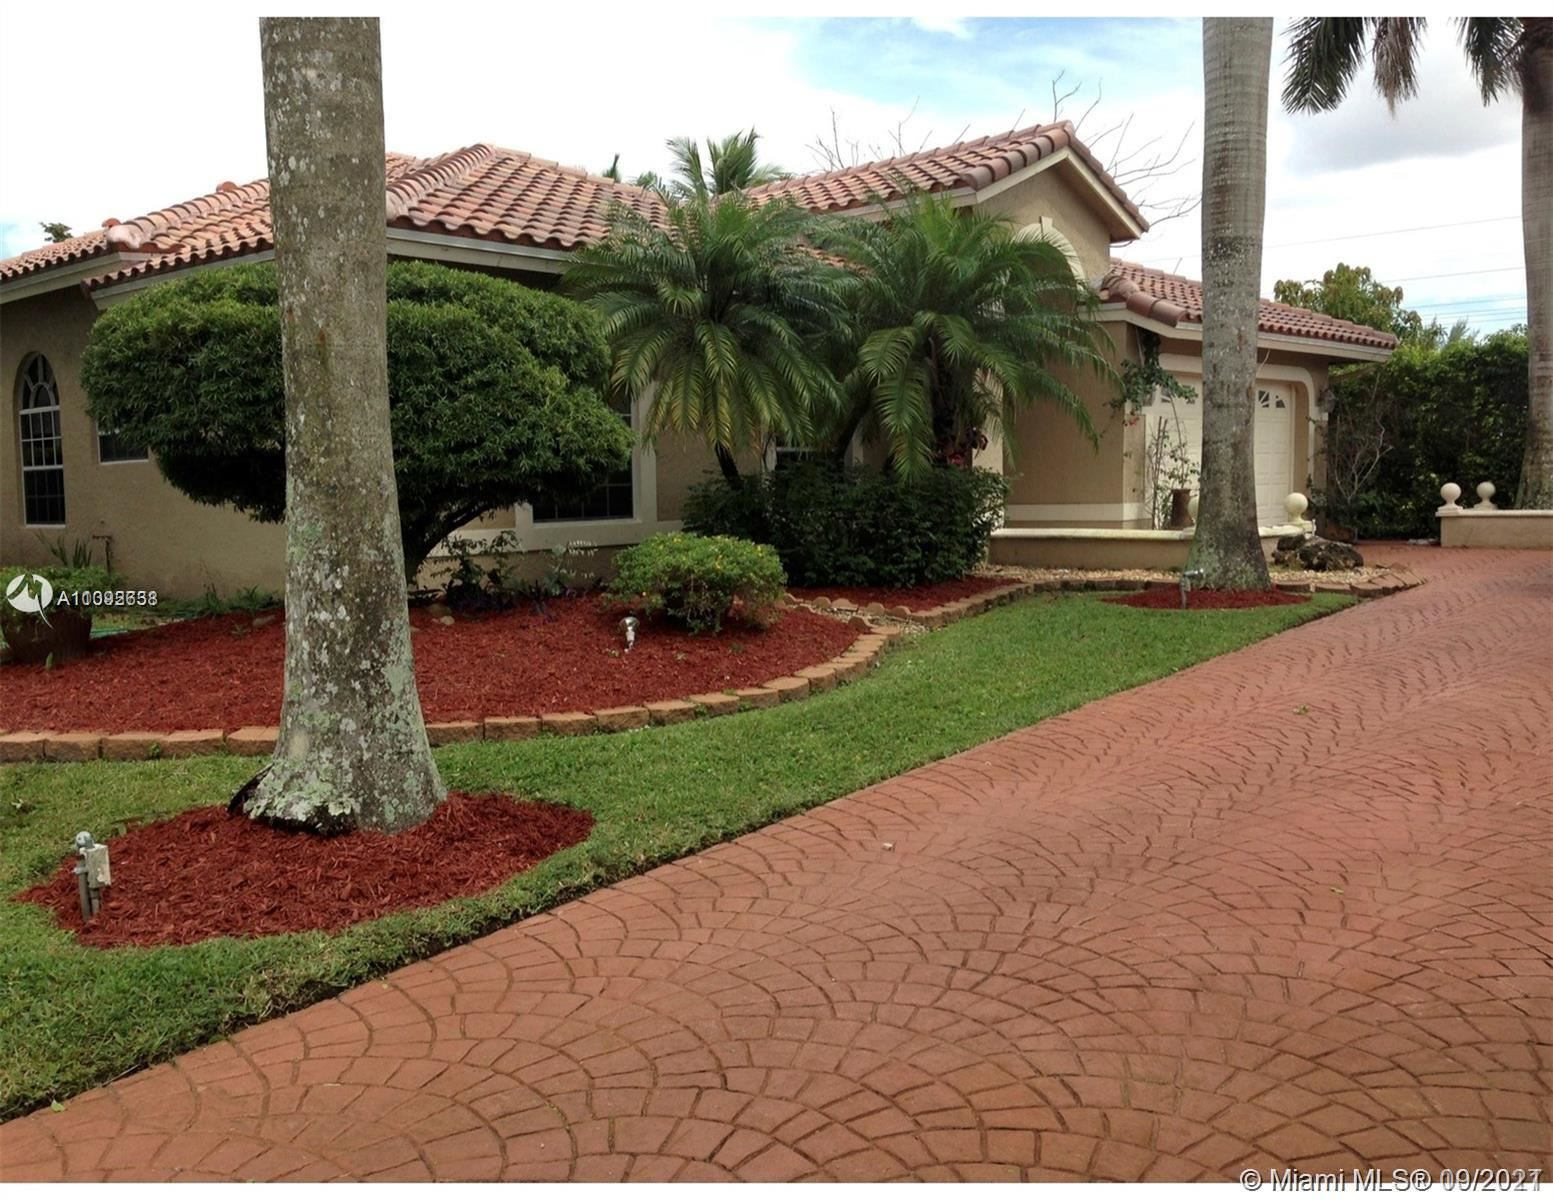 12284 SW 1st St, Coral Springs, FL 33071 - #: A11092638